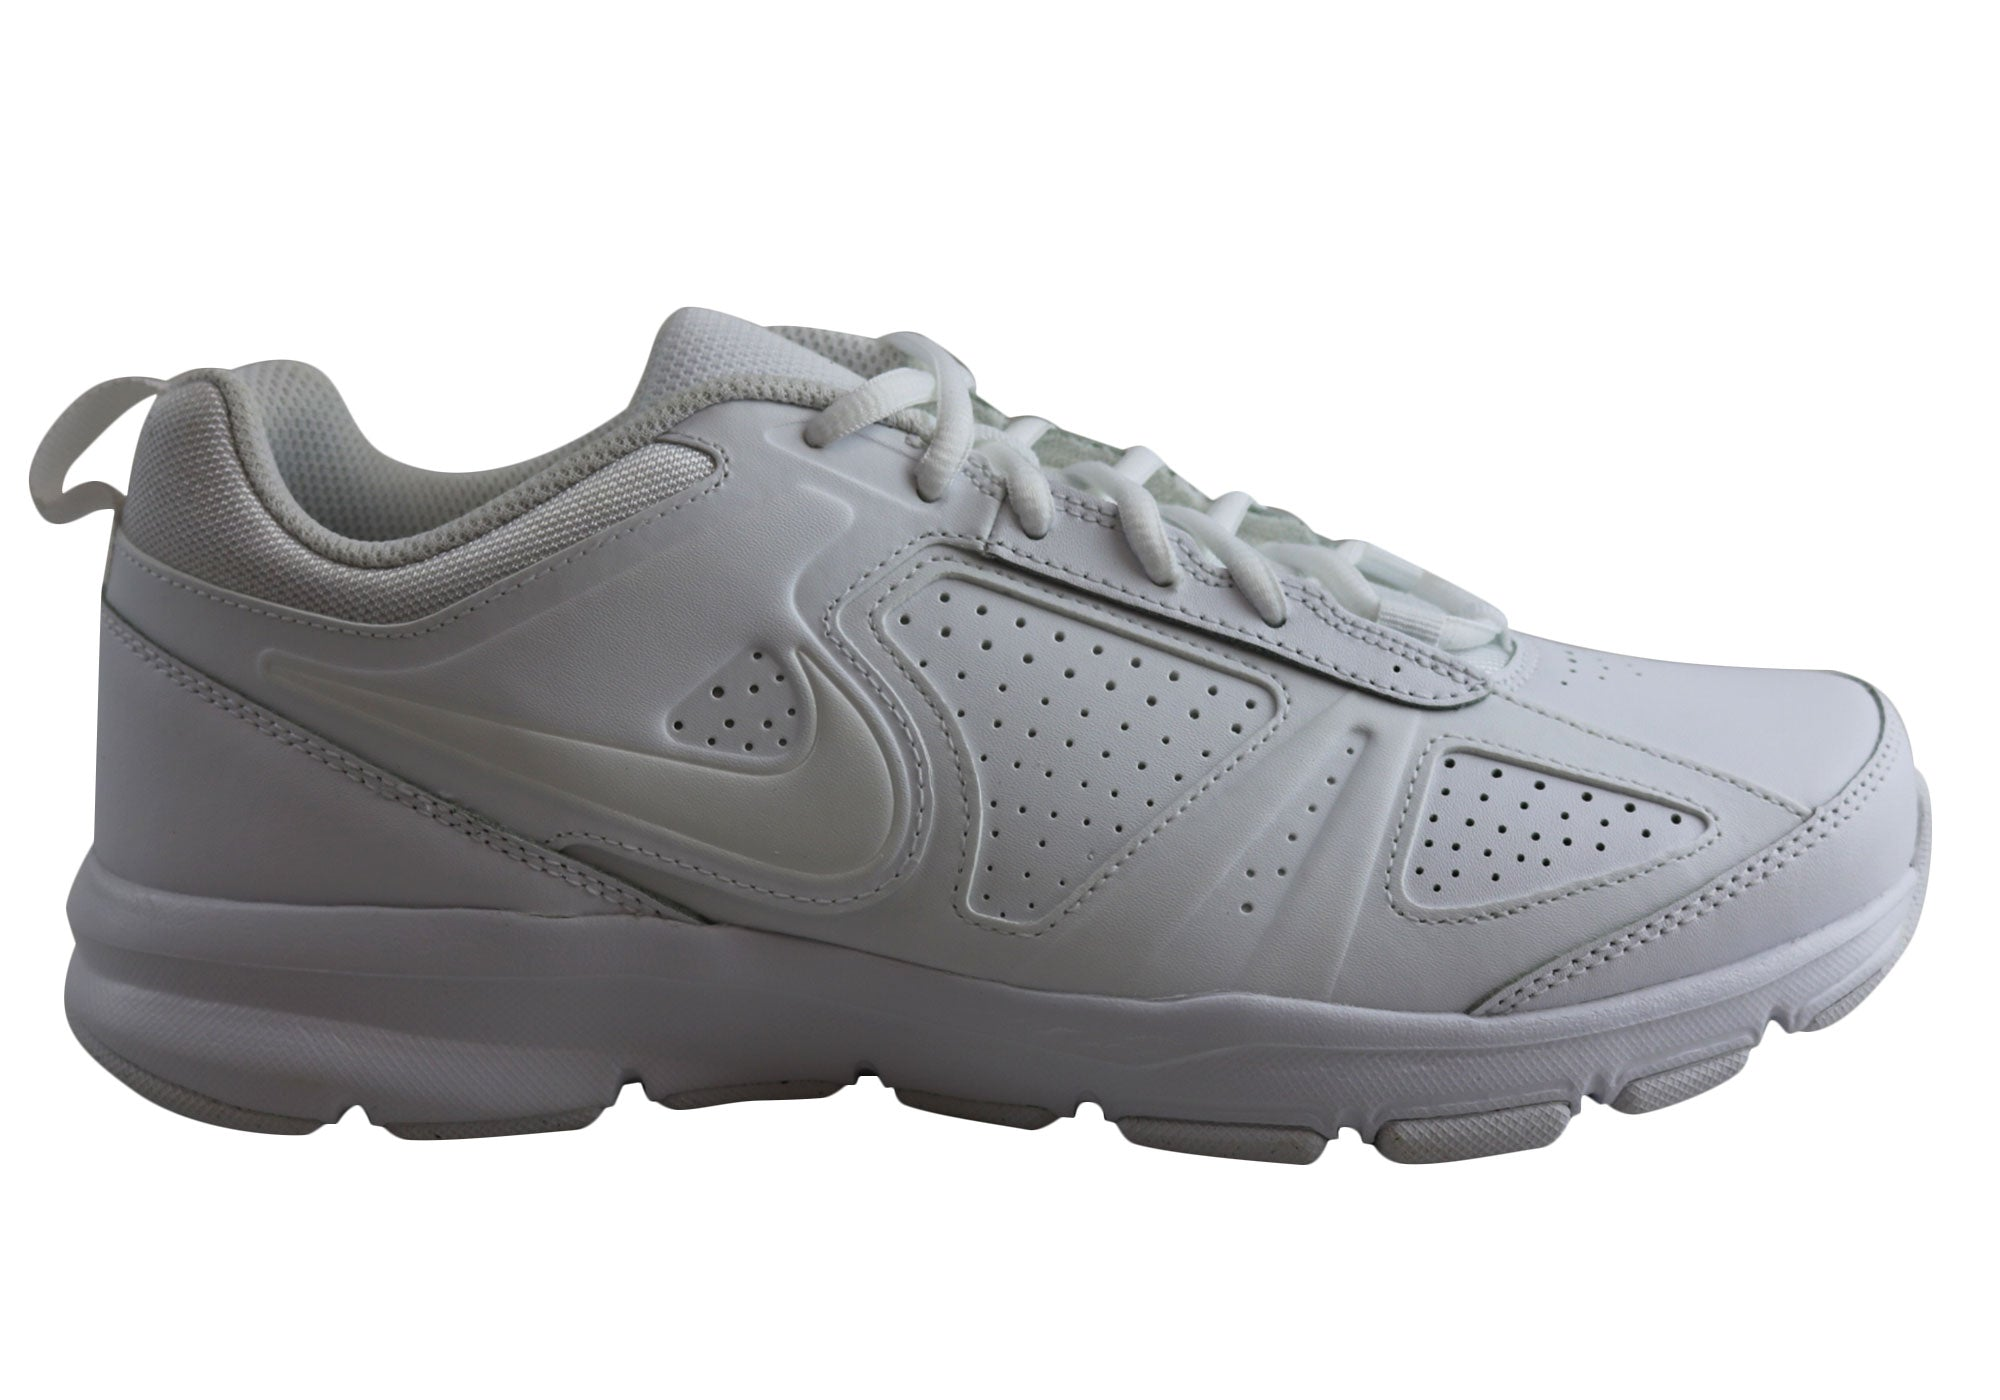 reputable site aecc6 6a694 Home Nike T-Lite XI Mens Cross Trainer Shoes Sport Shoes. White ...